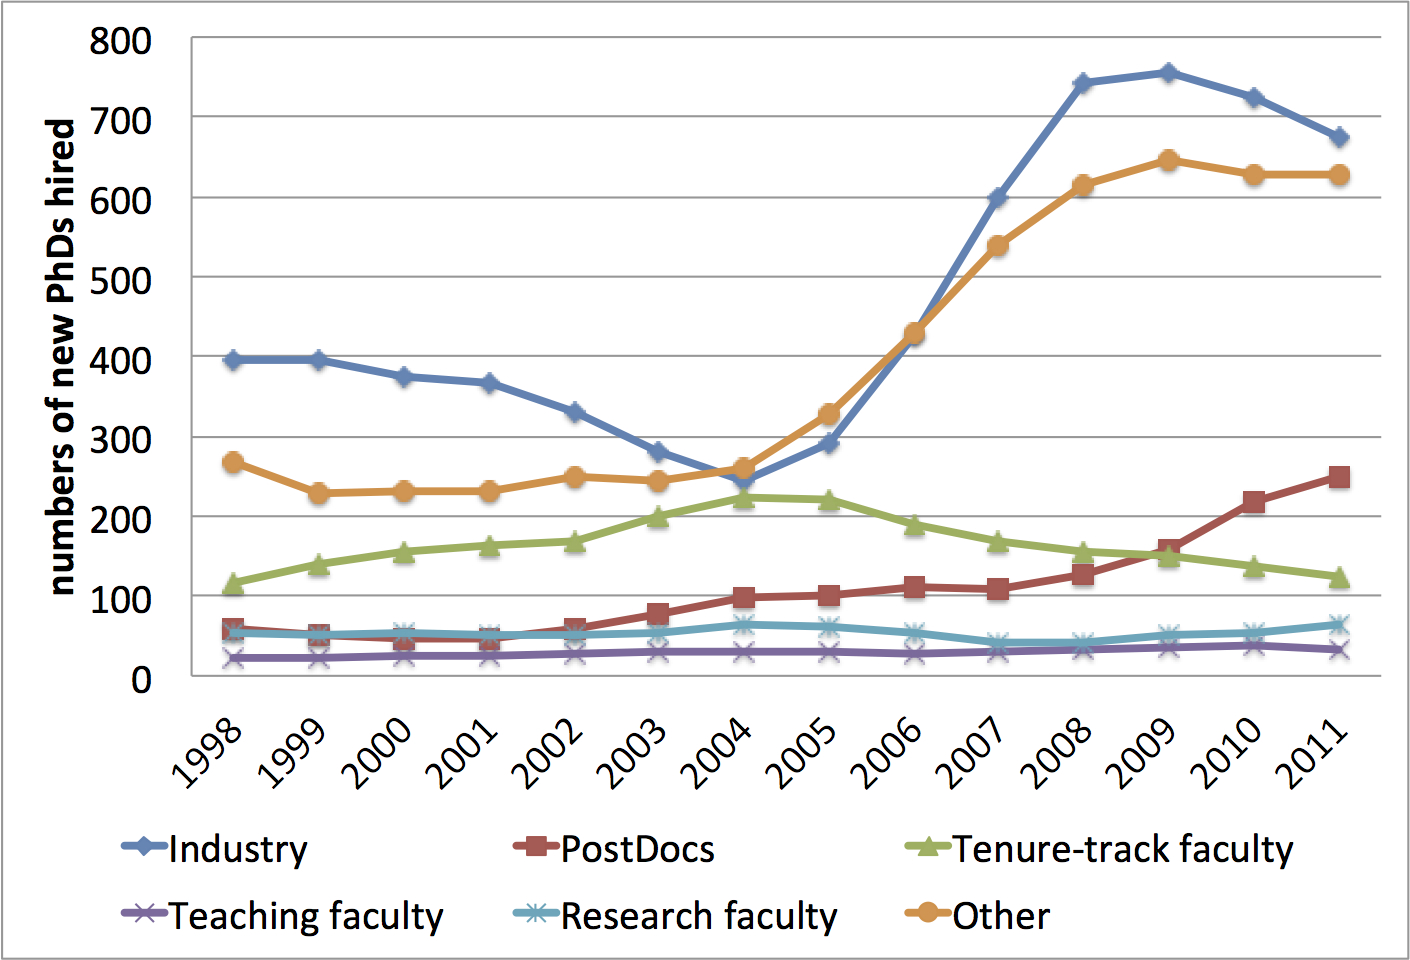 Hiring of new computer science Ph.D.s from U.S. and Canadian universities, as three-year rolling averages, 1998-2011.